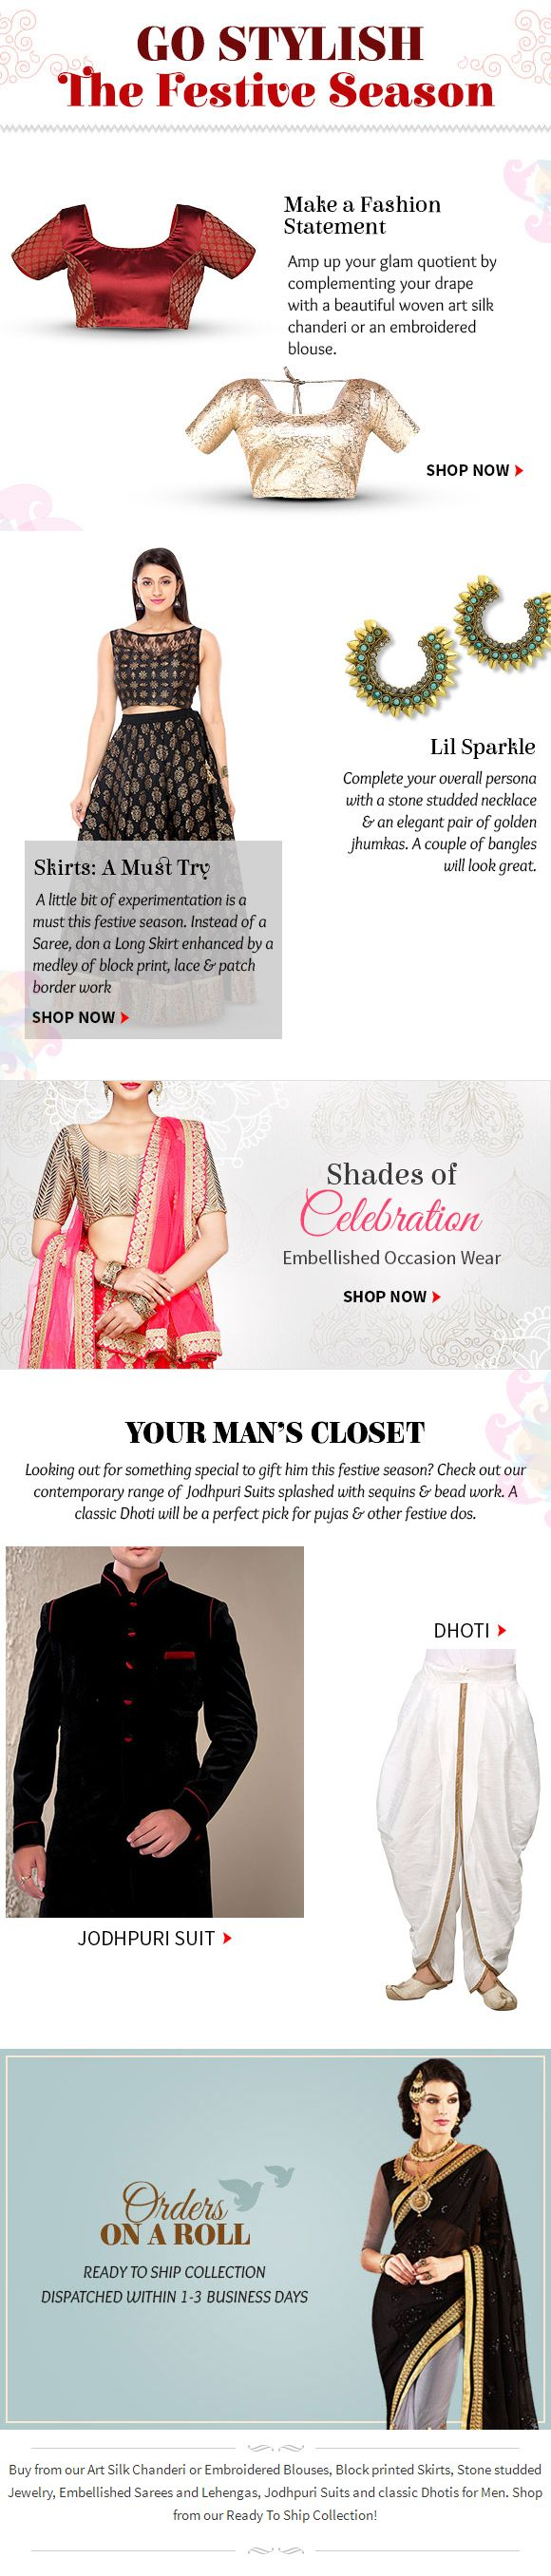 Buy from our Art Silk Chanderi or Embroidered Blouses, Block printed Skirts, Stone studded Jewelry, Embellished Sarees and Lehengas, Jodhpuri Suits and classic Dhotis for Men. Shop from our Ready To Ship Collection